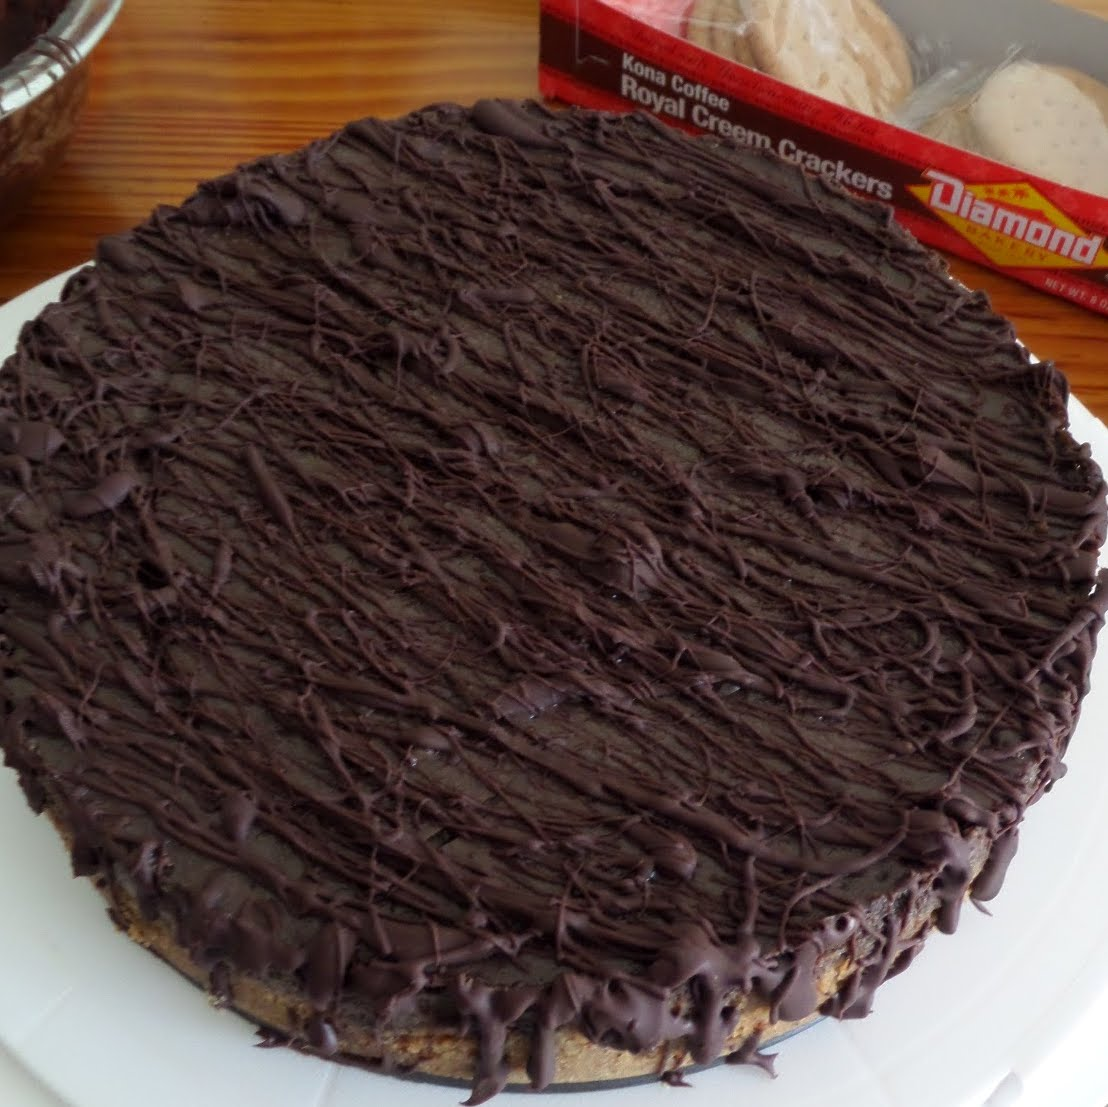 Mocha Chip Cheesecake:  A rich chocolate cheesecake with coffee, mini chocolate chips, and a dark chocolate drizzle.  A perfect birthday cake for my husband.